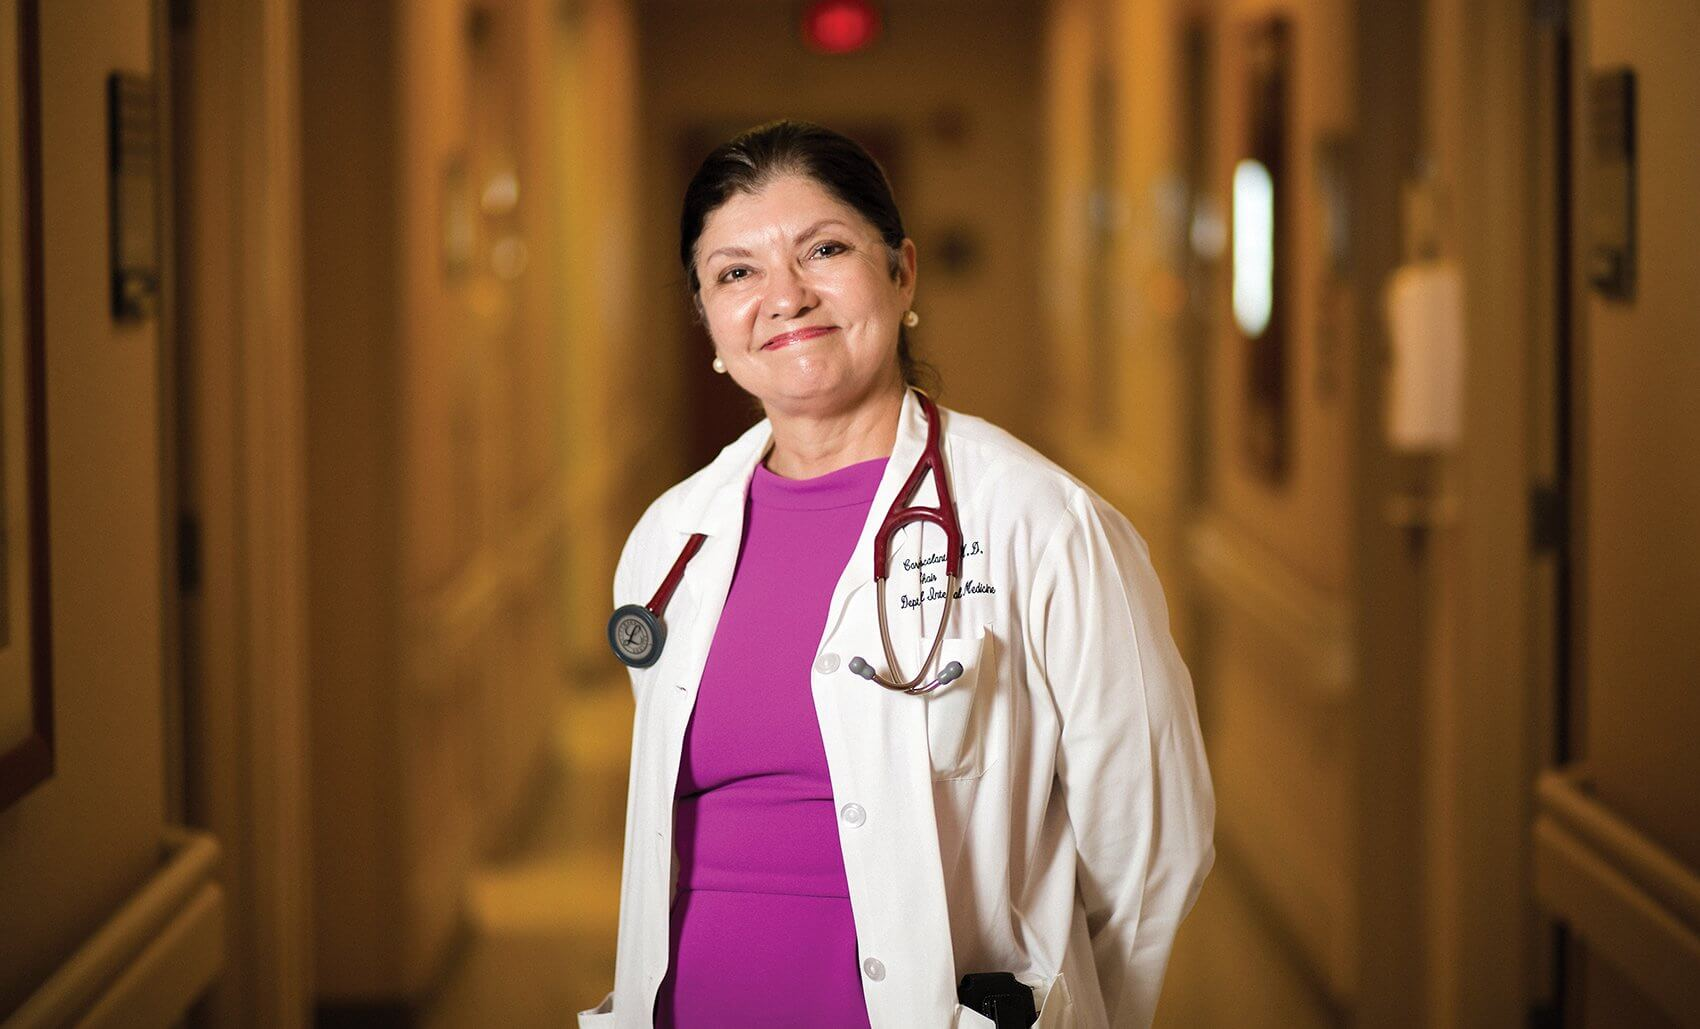 Carmelita P. Escalante, M.D., professor and department chair of general internal medicine at MD Anderson and physician at the Cancer-Related Fatigue Clinic.